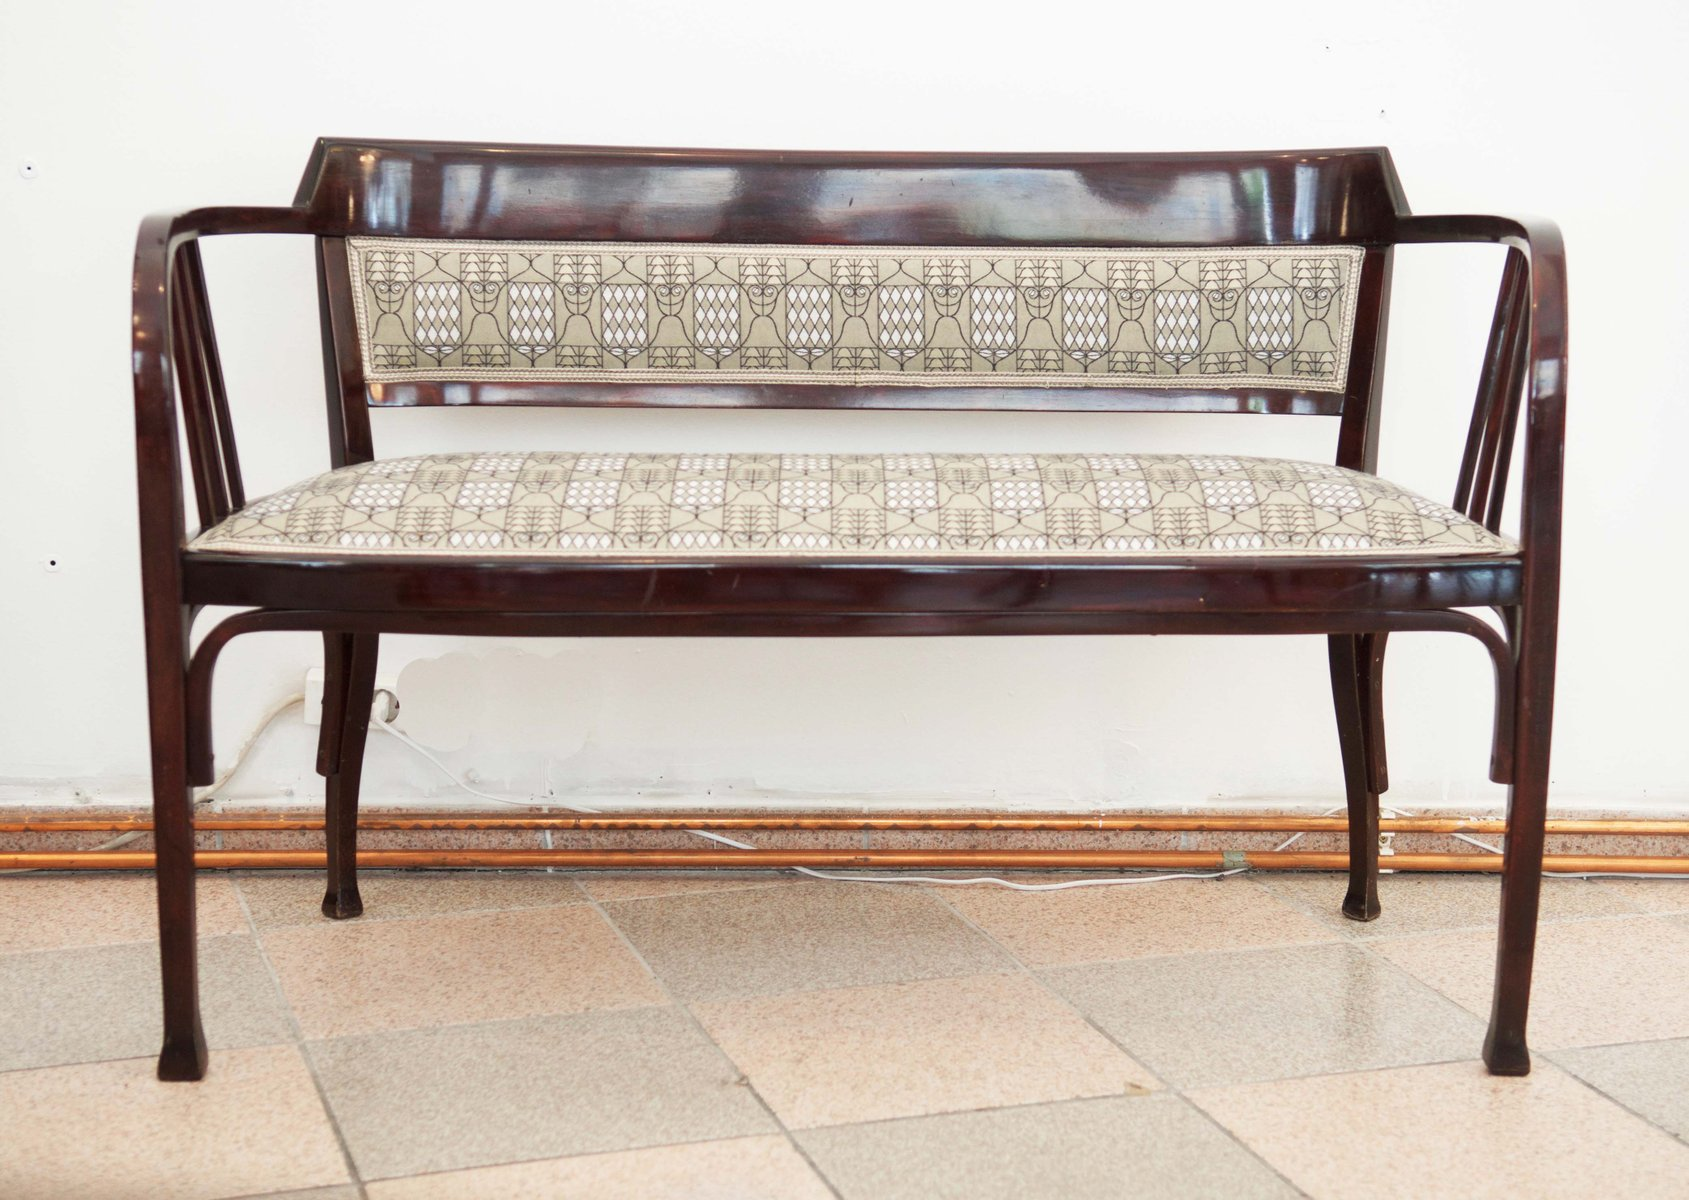 Antique Vienna Secession Bent Beech Bench from Thonet for sale at ...